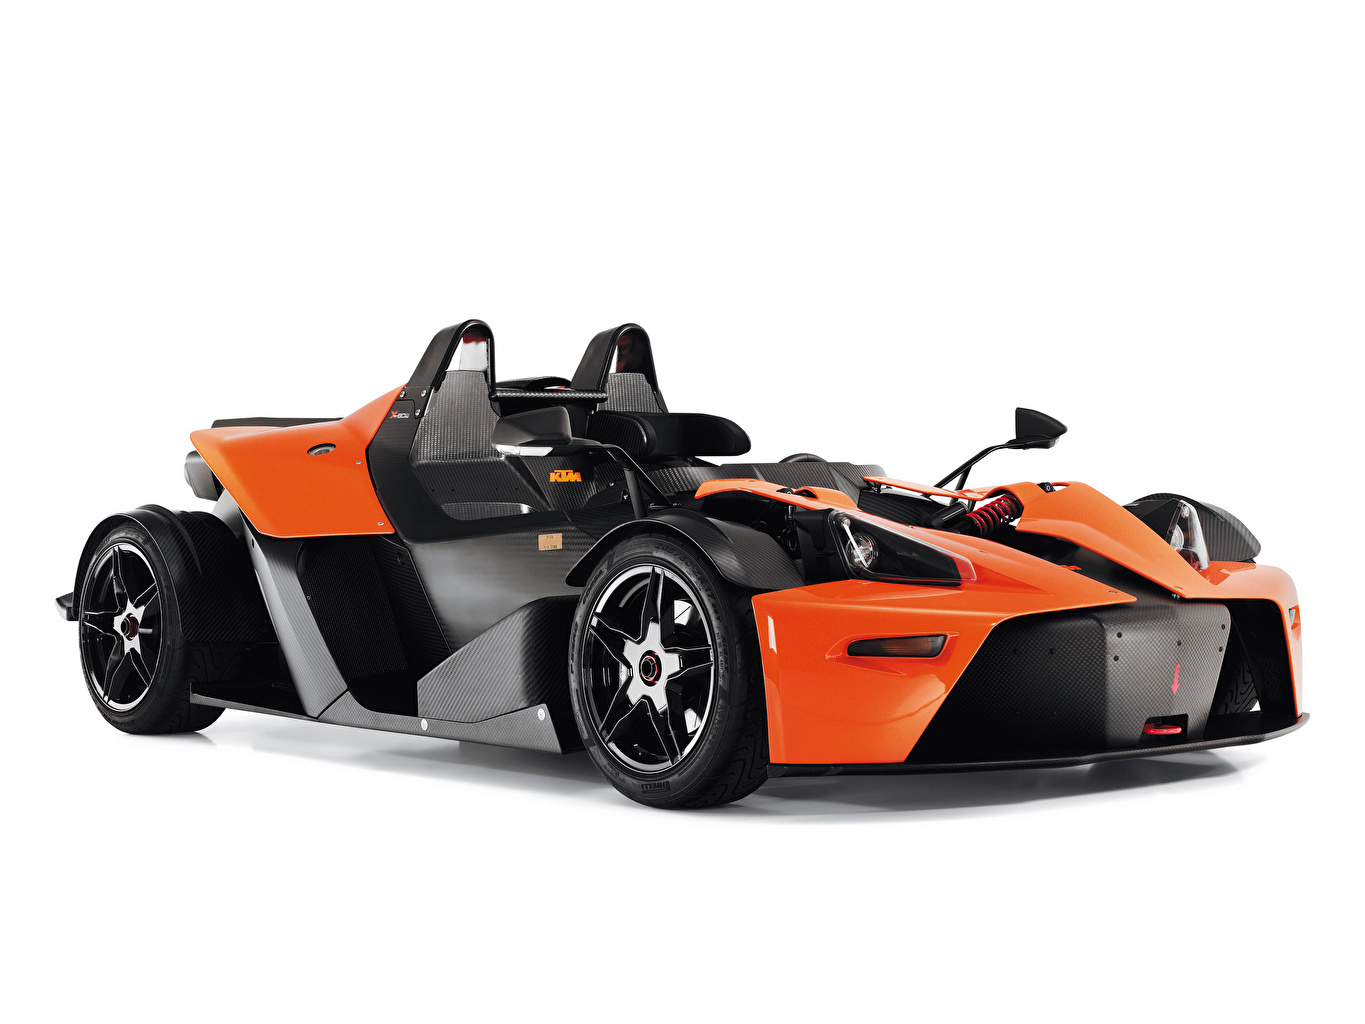 Wallpaper KTM Cars Carbon fiber 2008-18 X-Bow Clubsport Orange automobile White background reinforced polymer plastic auto Cars